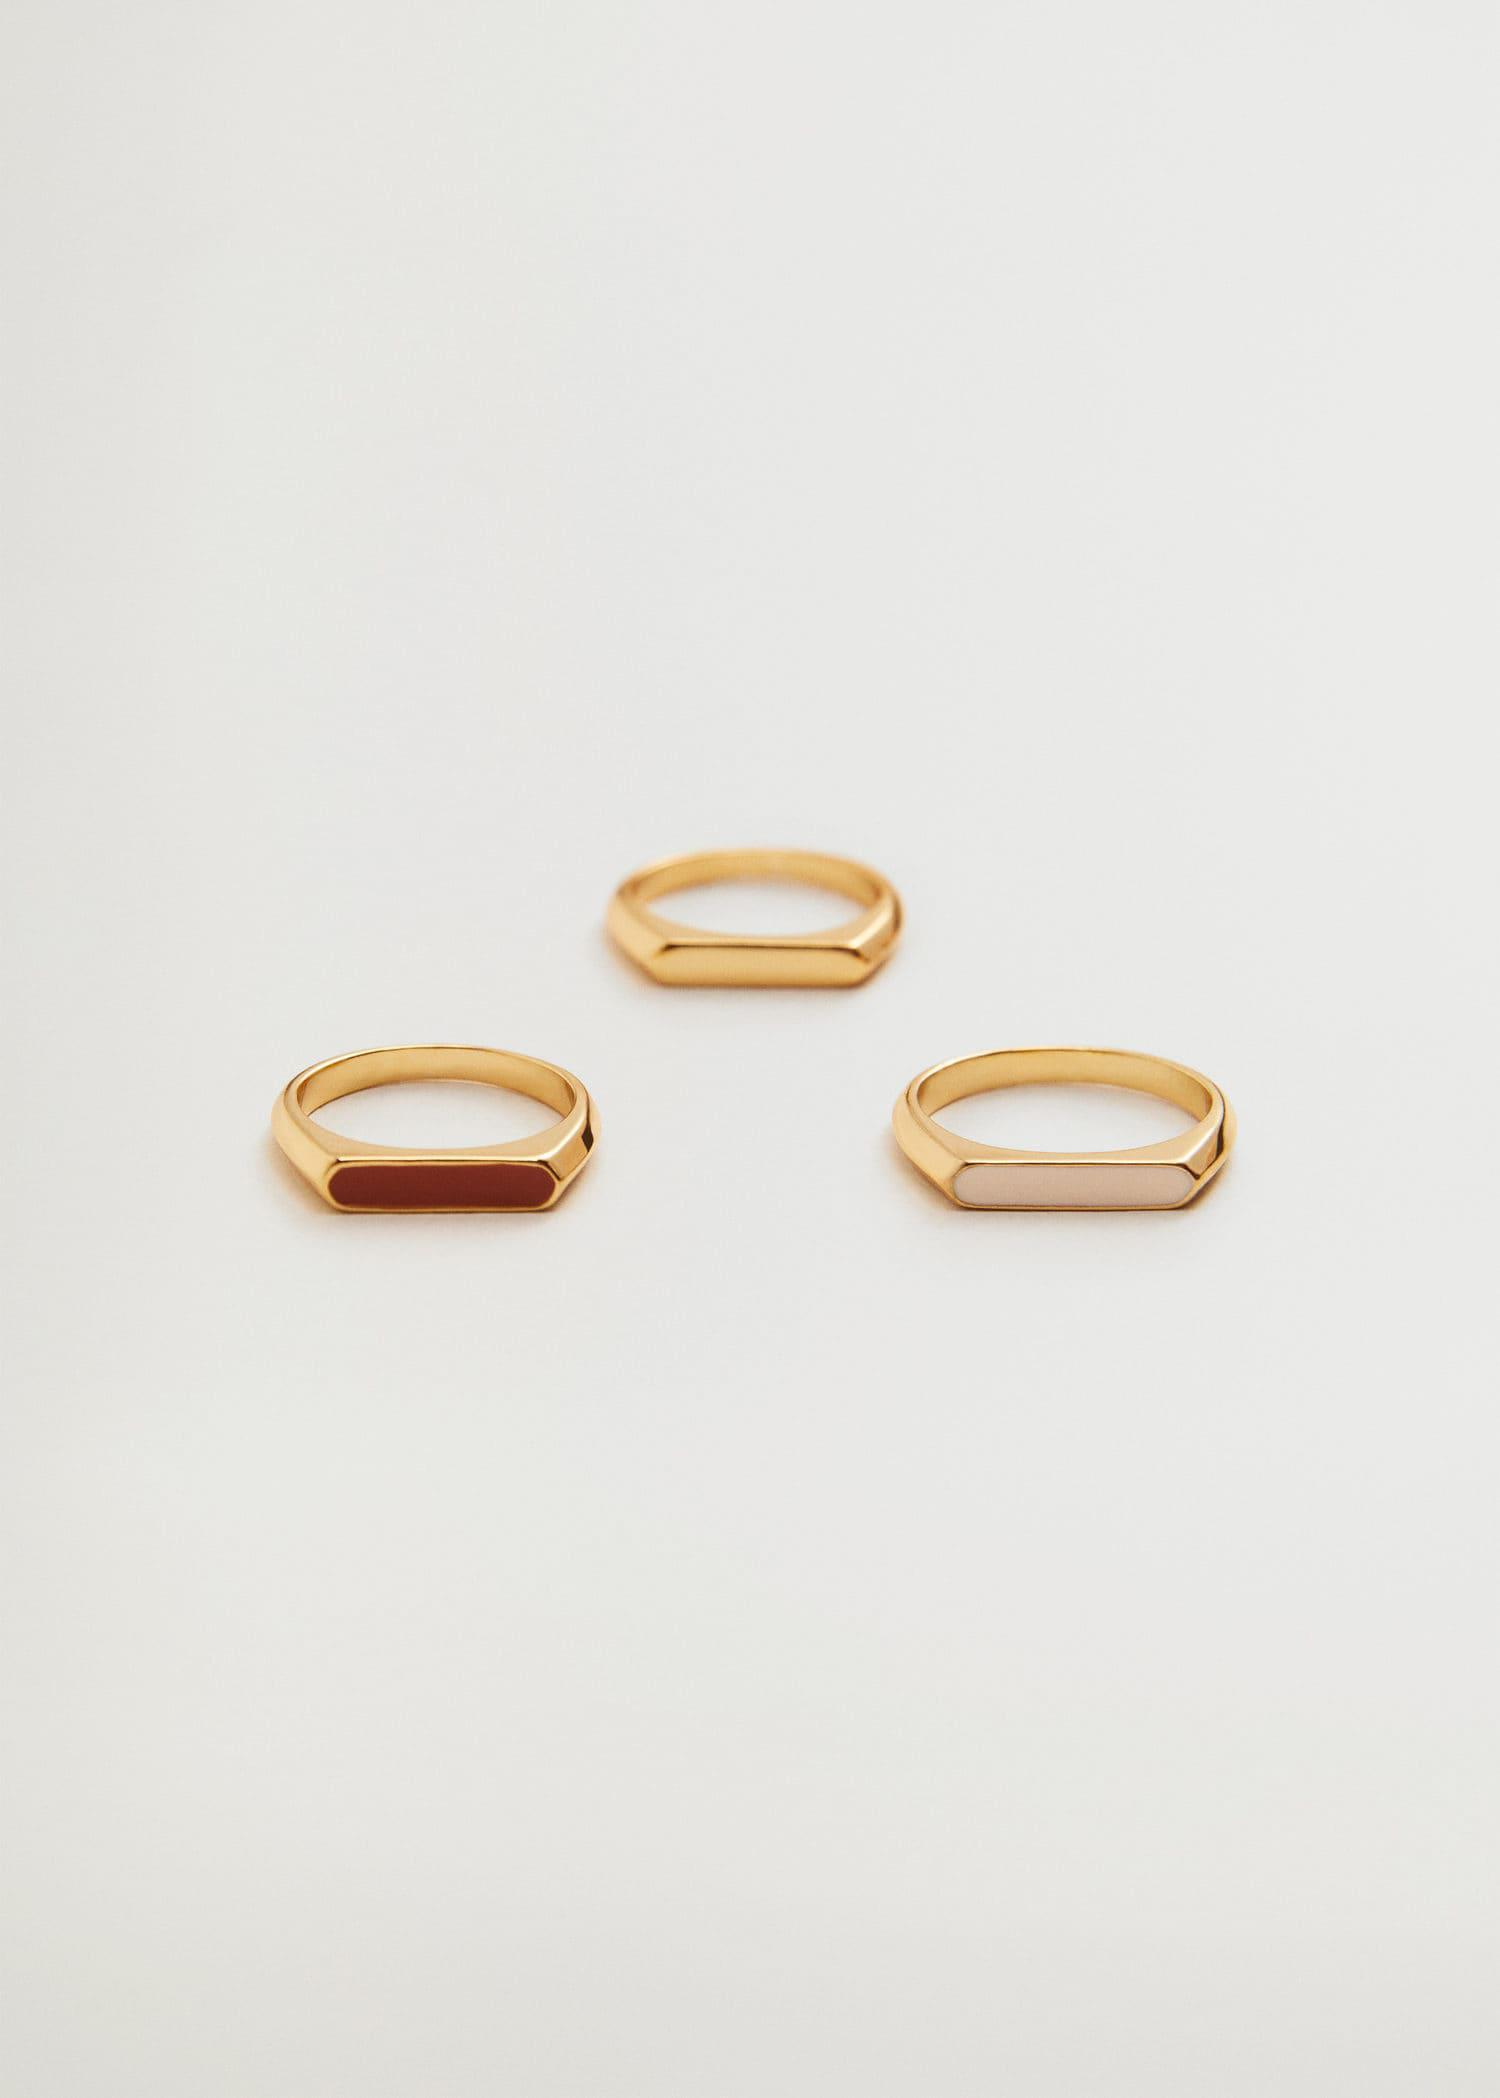 Combined ring 3 set